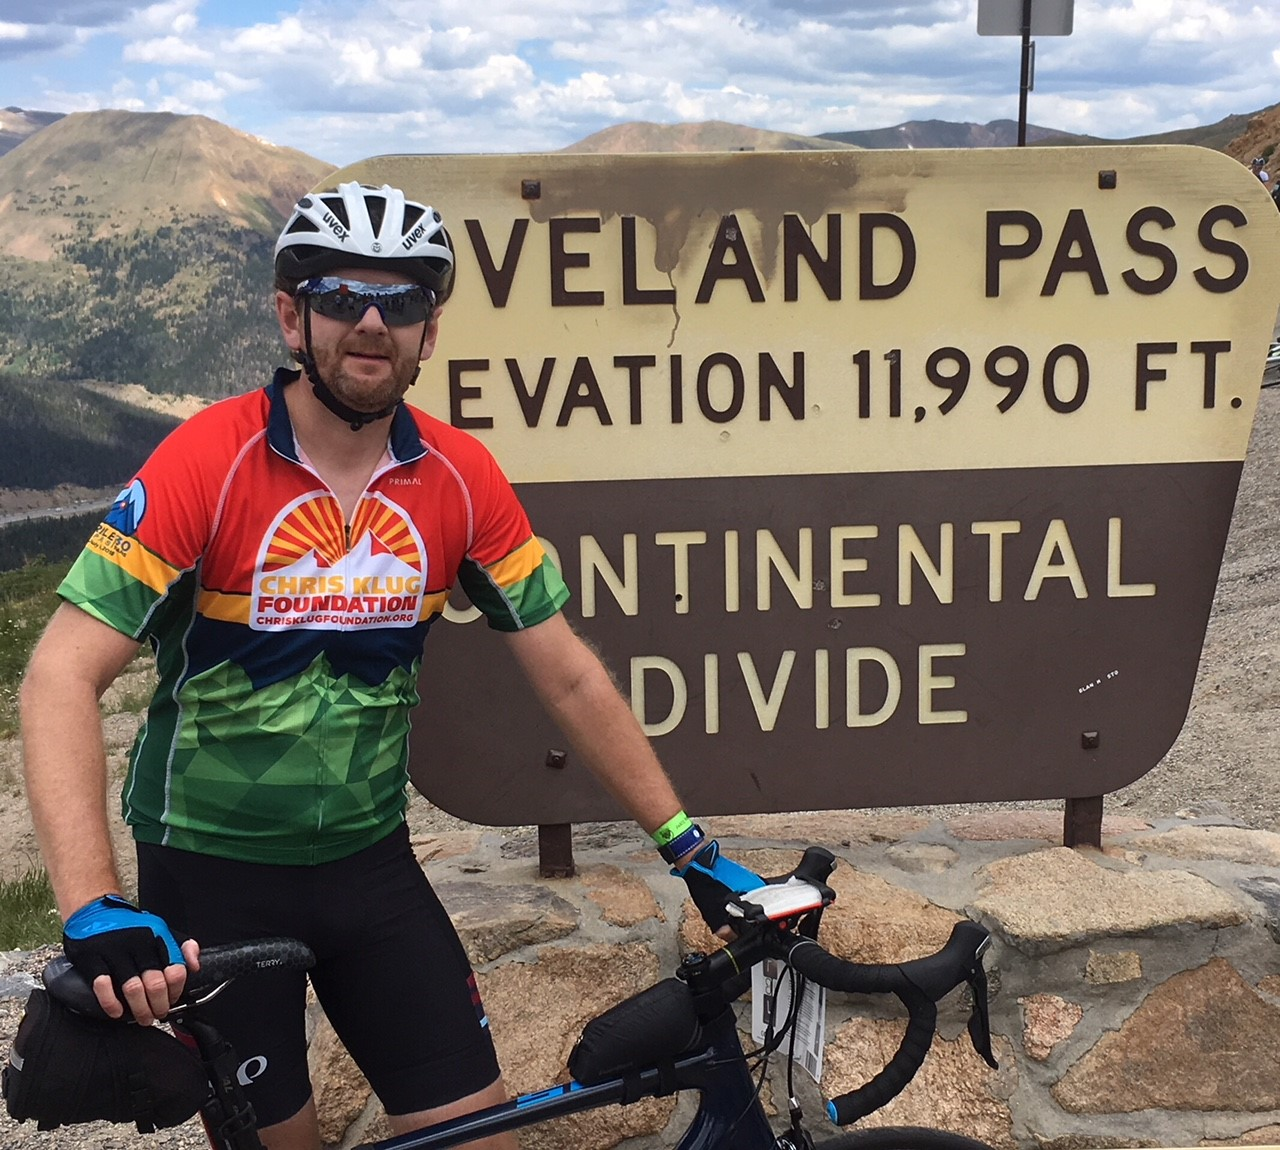 Sweaty person biking on Loveland Pass at the Continental Divide.